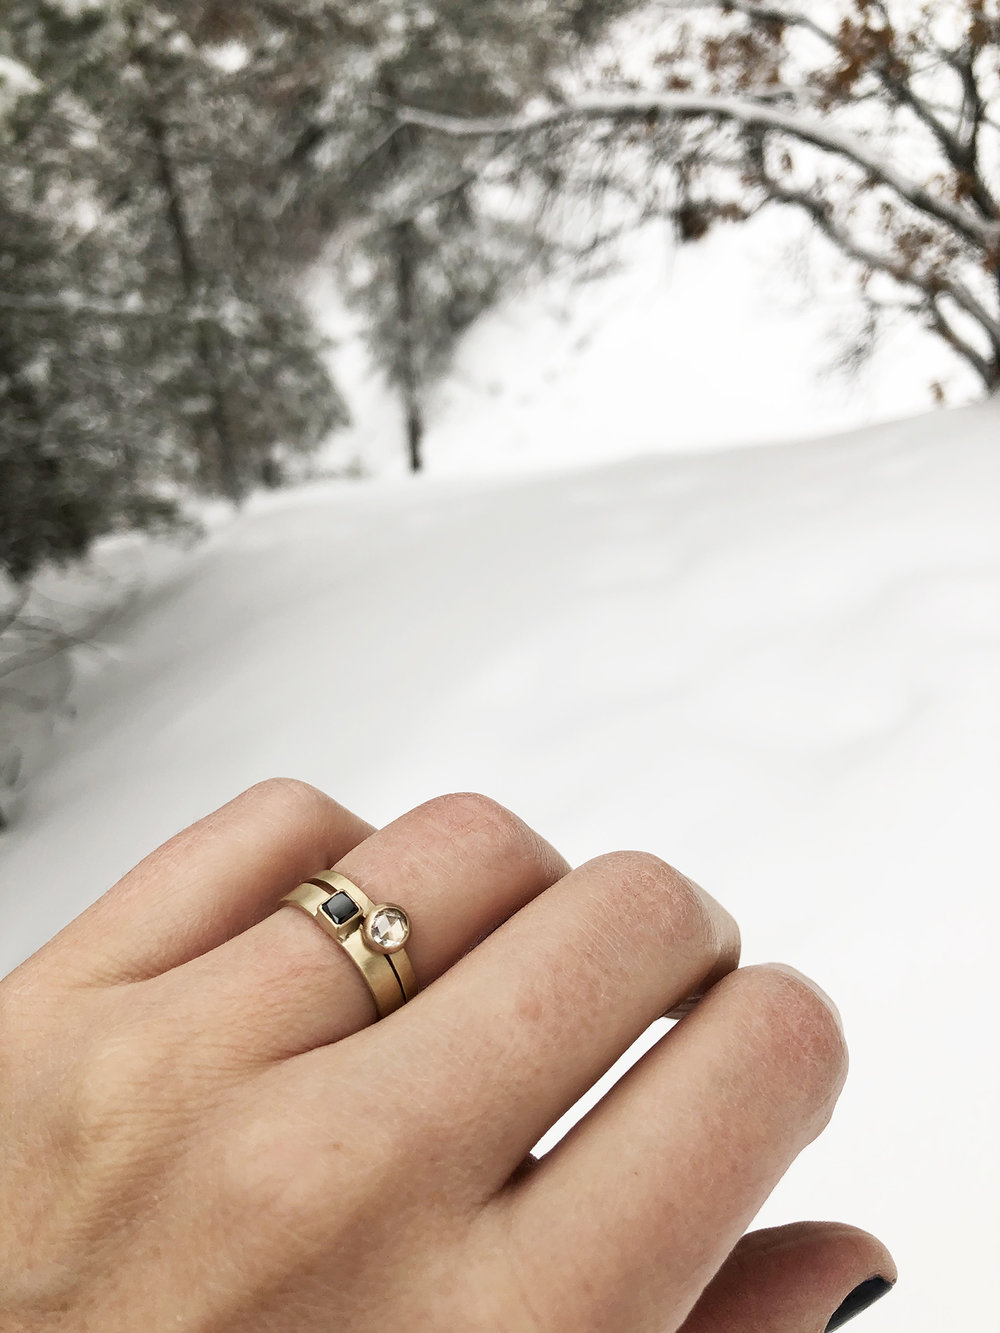 Took the  Diamond Mesa  and  Katherine Rosecut Diamond  rings out for a snowy walk in the forest.